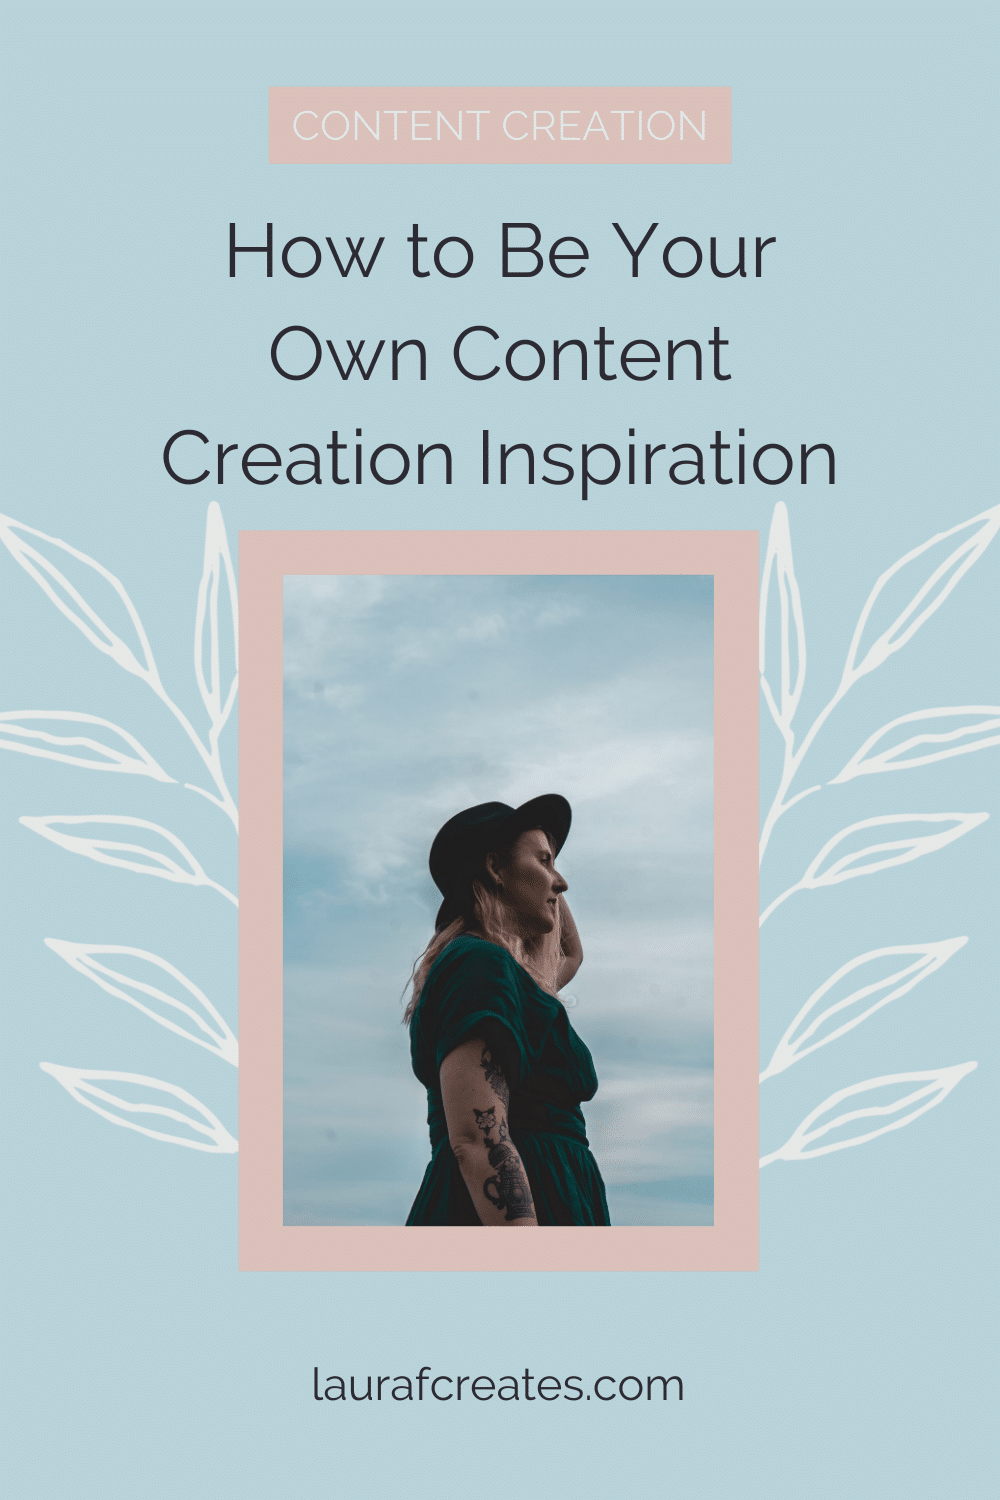 How to Be Your Own Content Creation Inspiration by Laura F Creates. This blog post includes tips for building your website, copywriting tips, websites for business. Click through to browse the blog or for more content tips